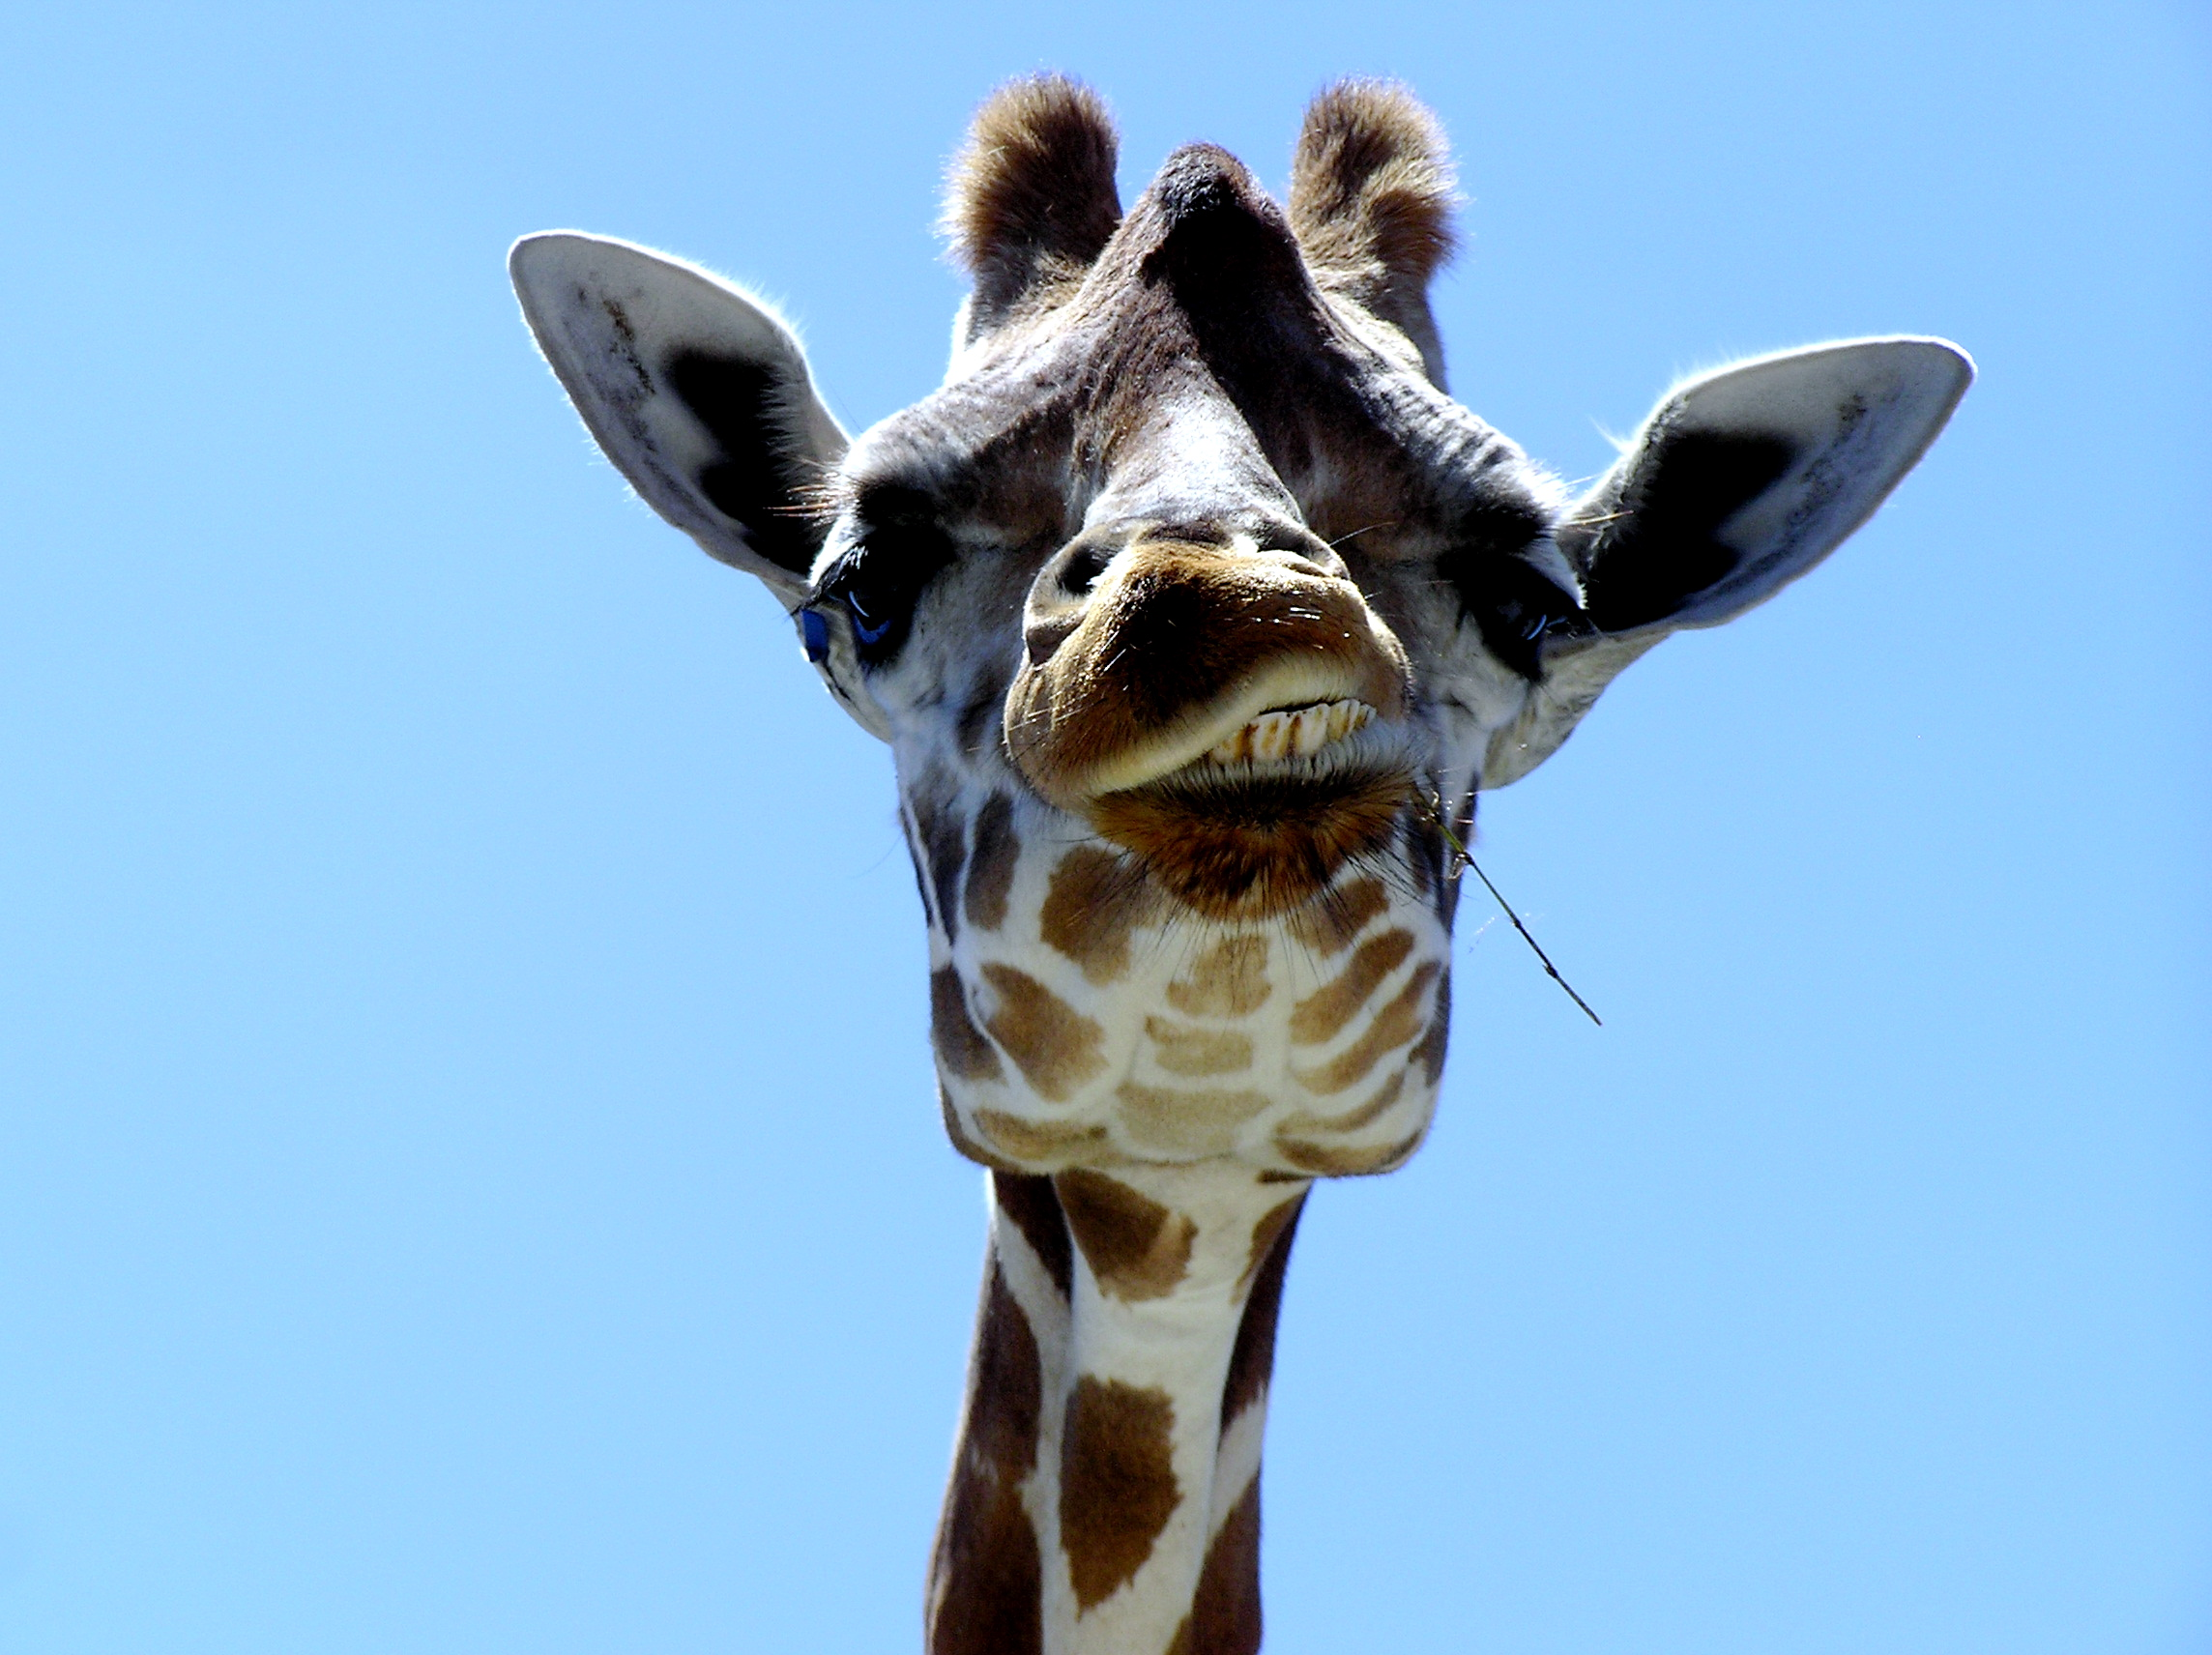 Giraffe head close up - photo#3